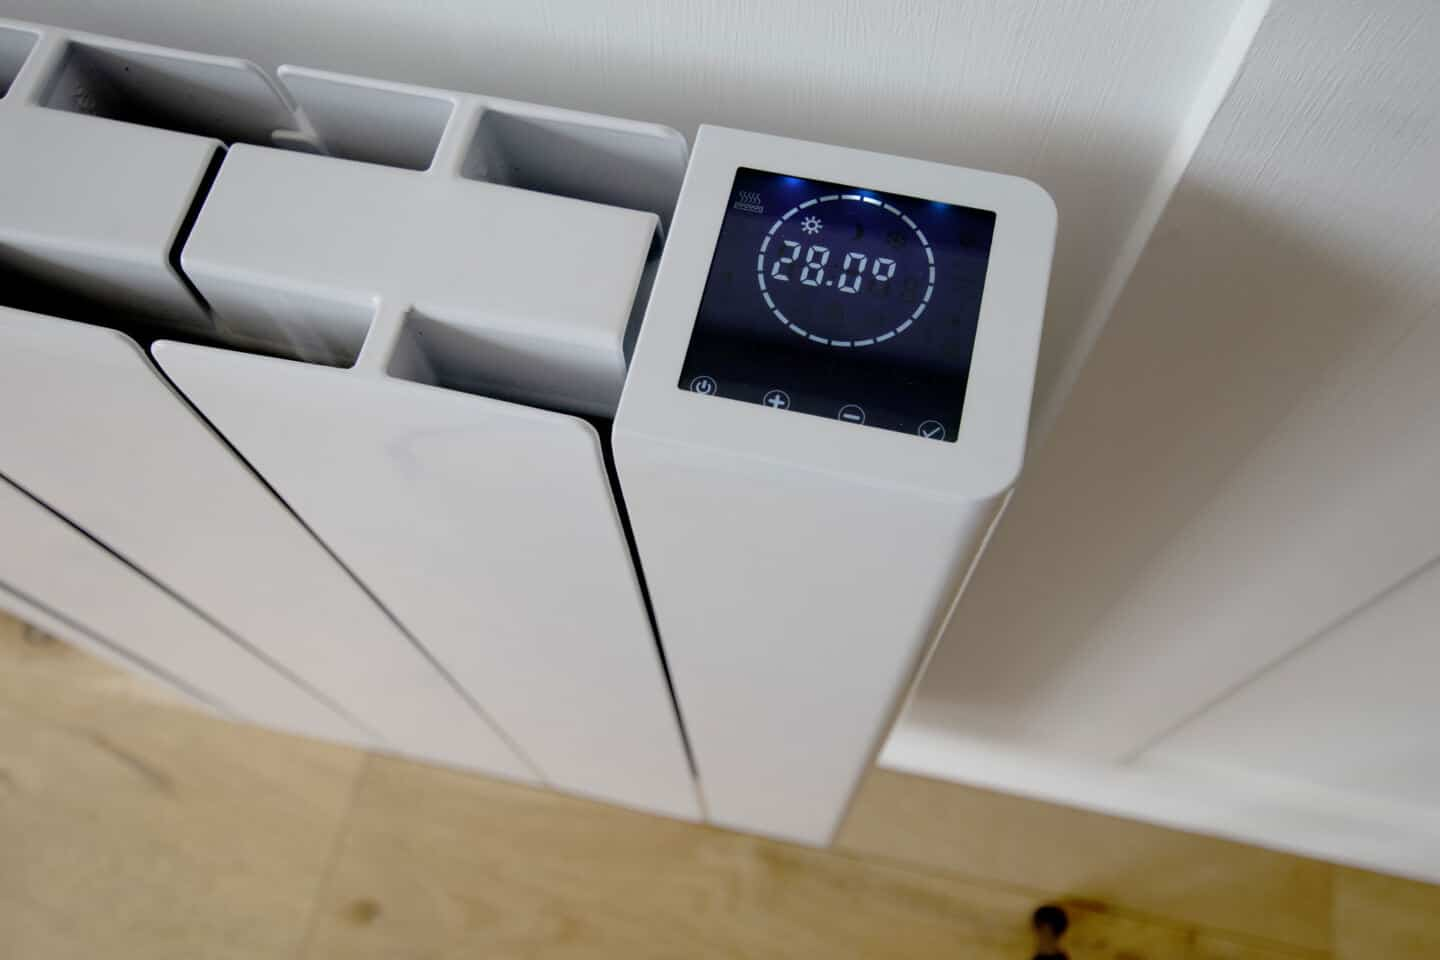 The digital display of the Ecostrad iQ Ceramic smart electric radiator mounted on a white wall.